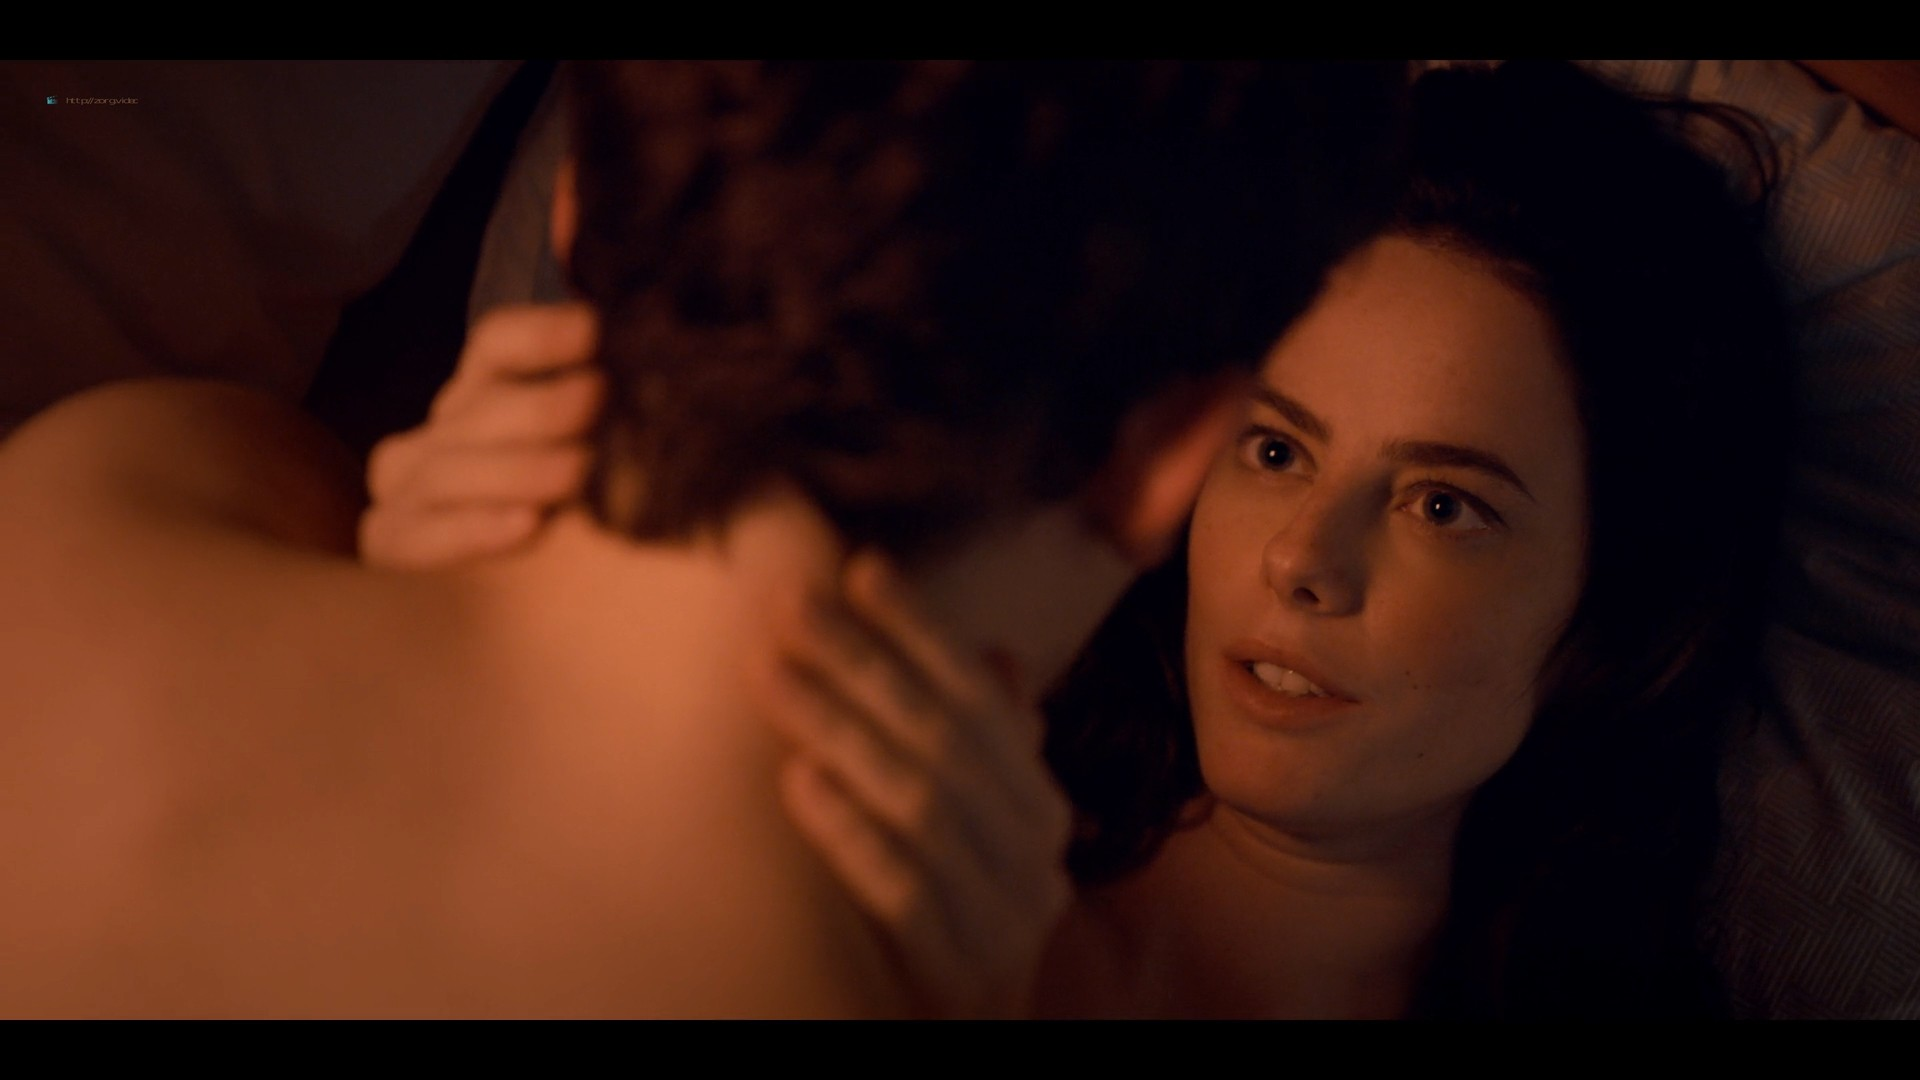 Kaya Scodelario hot and some sex - Spinning Out (2020) s1e1-3 HD 1080p (13)